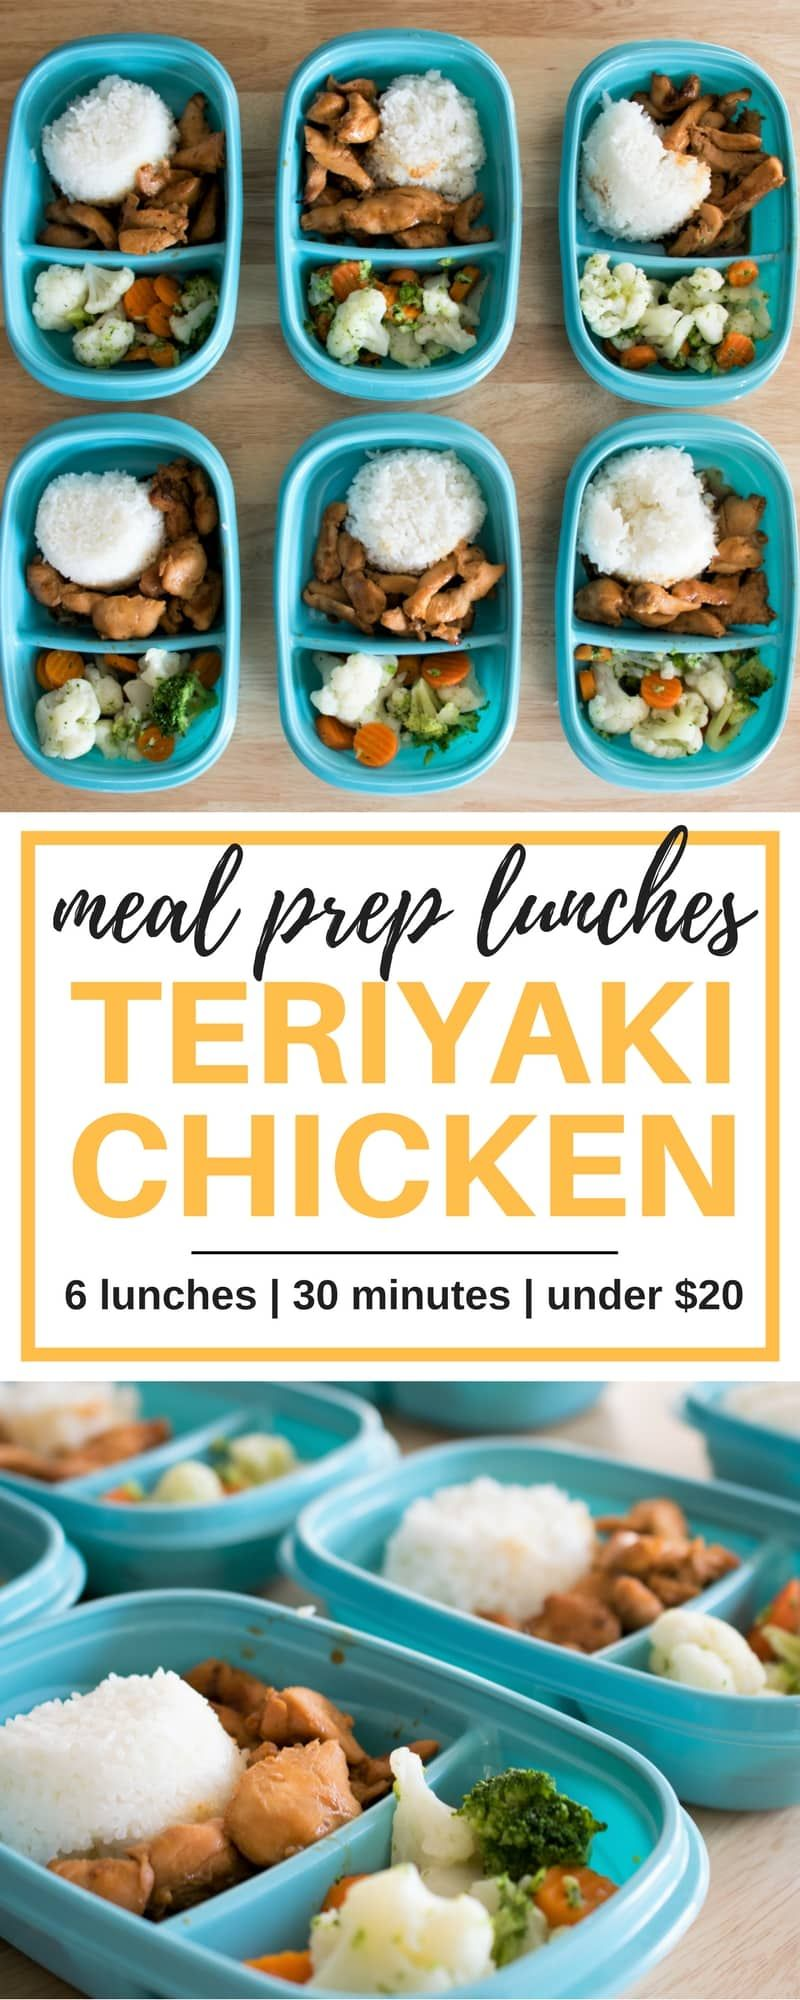 Meal Prep Lunches - Teriyaki Chicken images